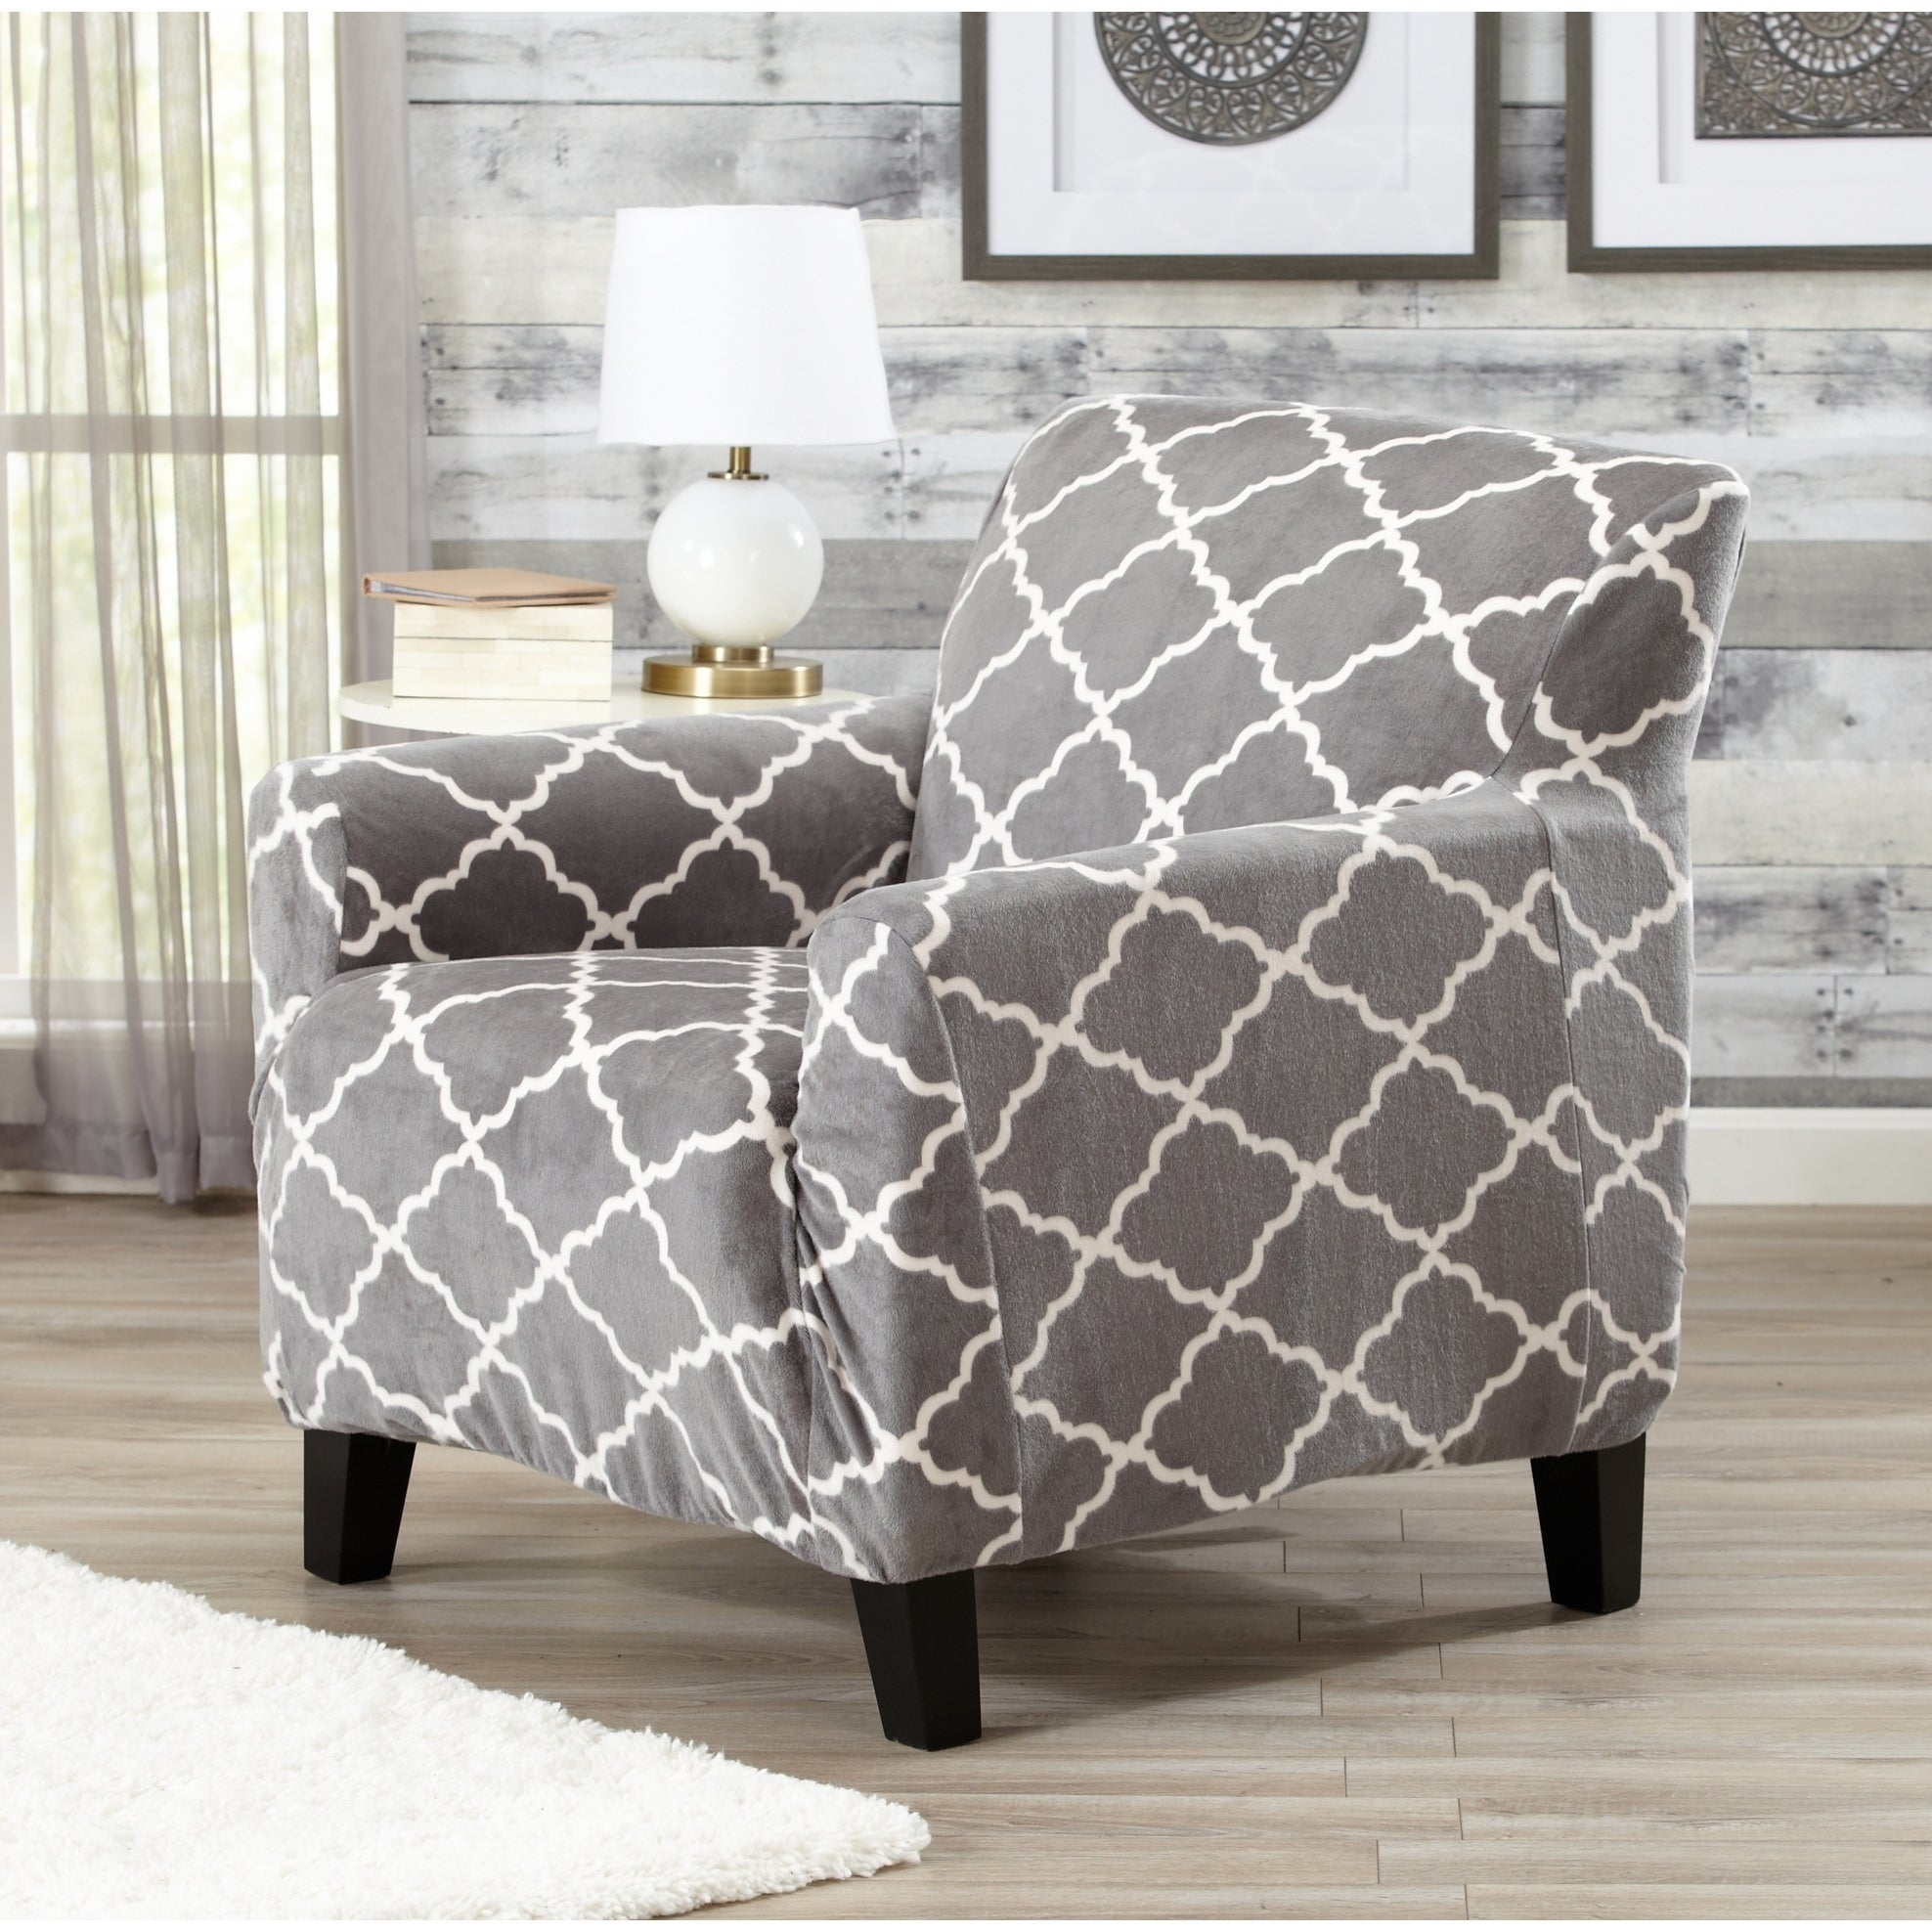 Great Bay Home Printed Velvet Plush Form Fit Chair Slipcover Free Shipping On Orders Over 45 18606780